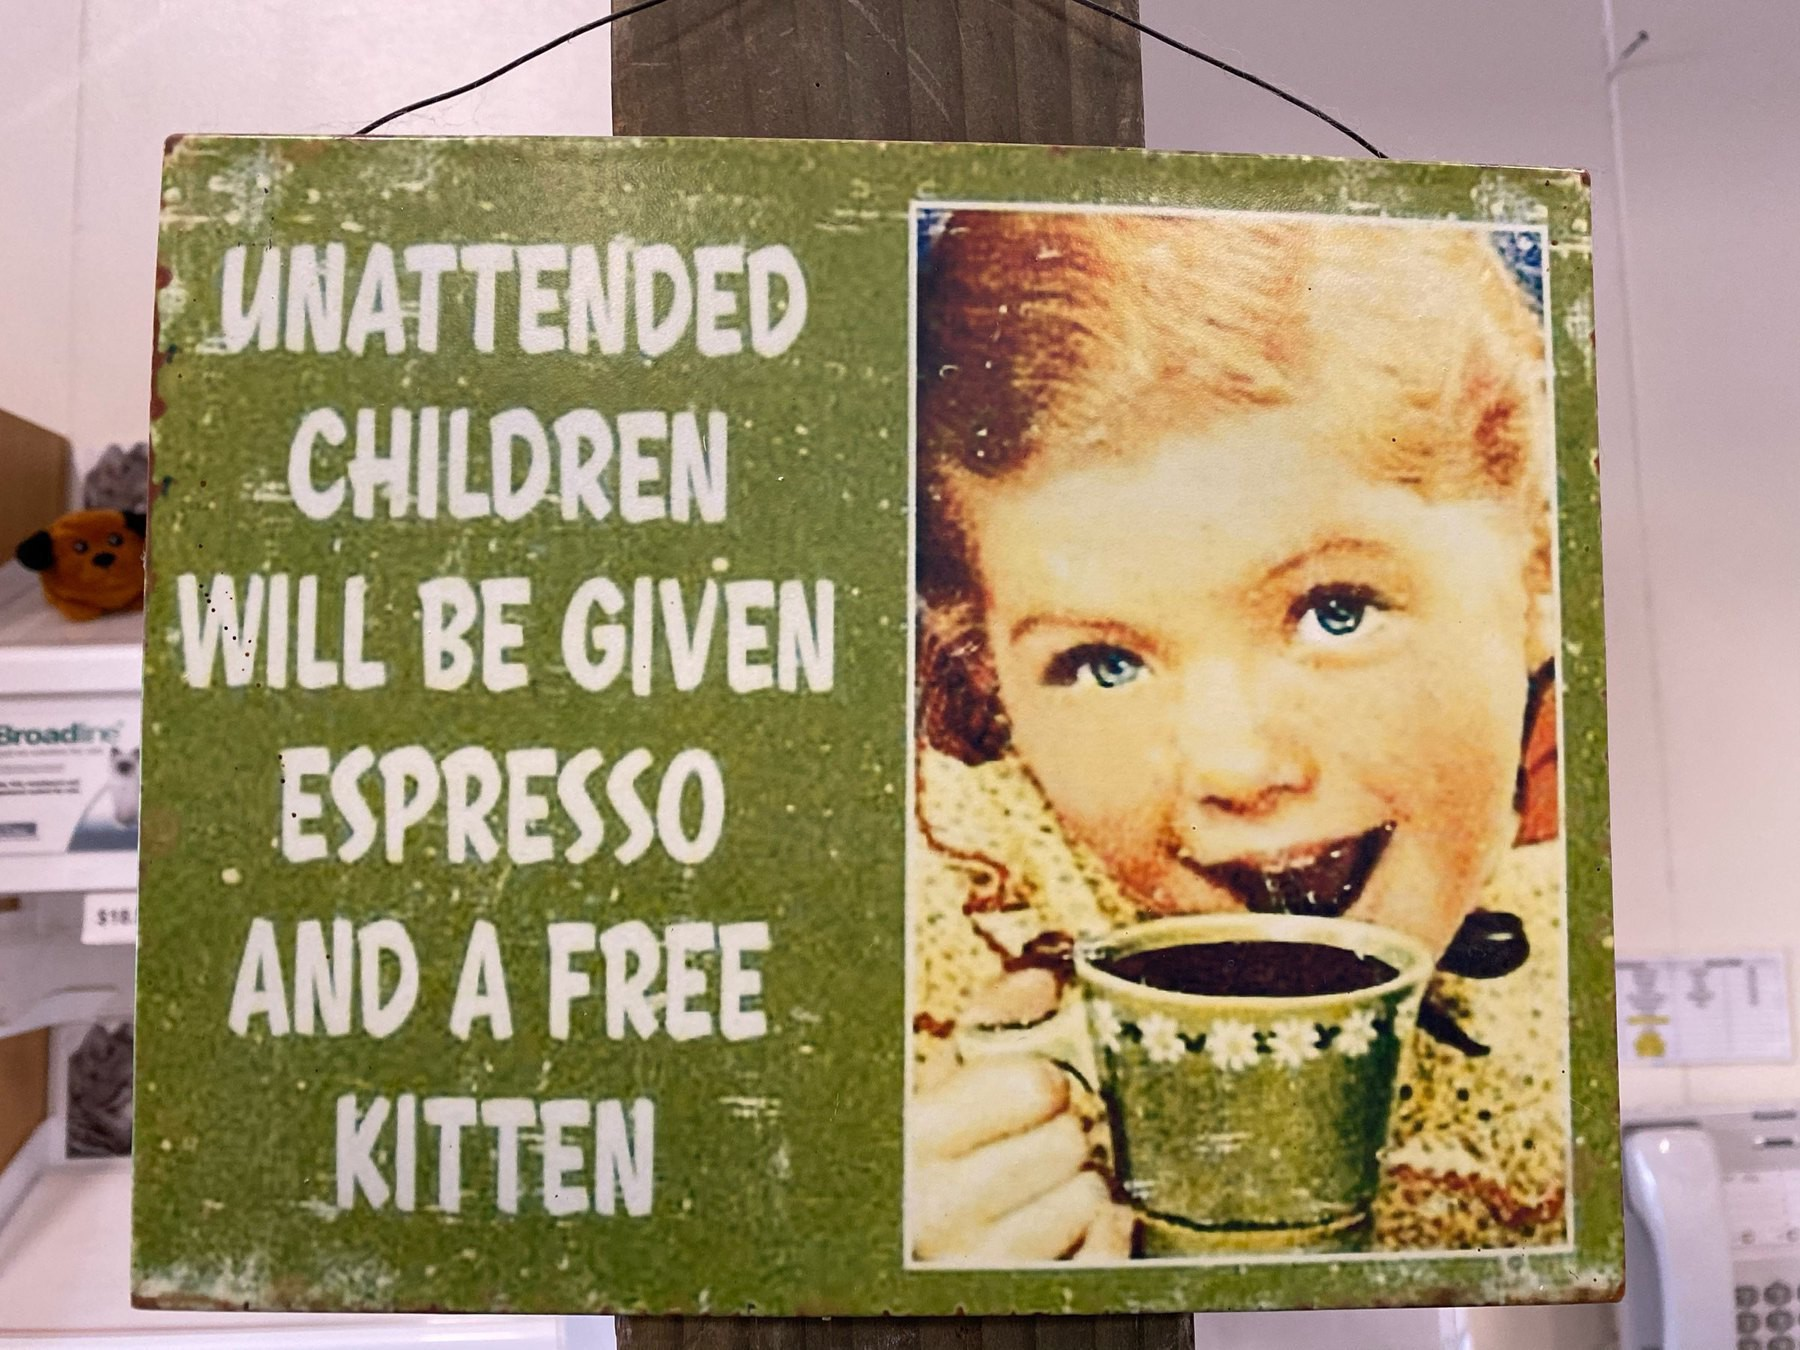 Unattended children will ve given espresso and a free kitten.